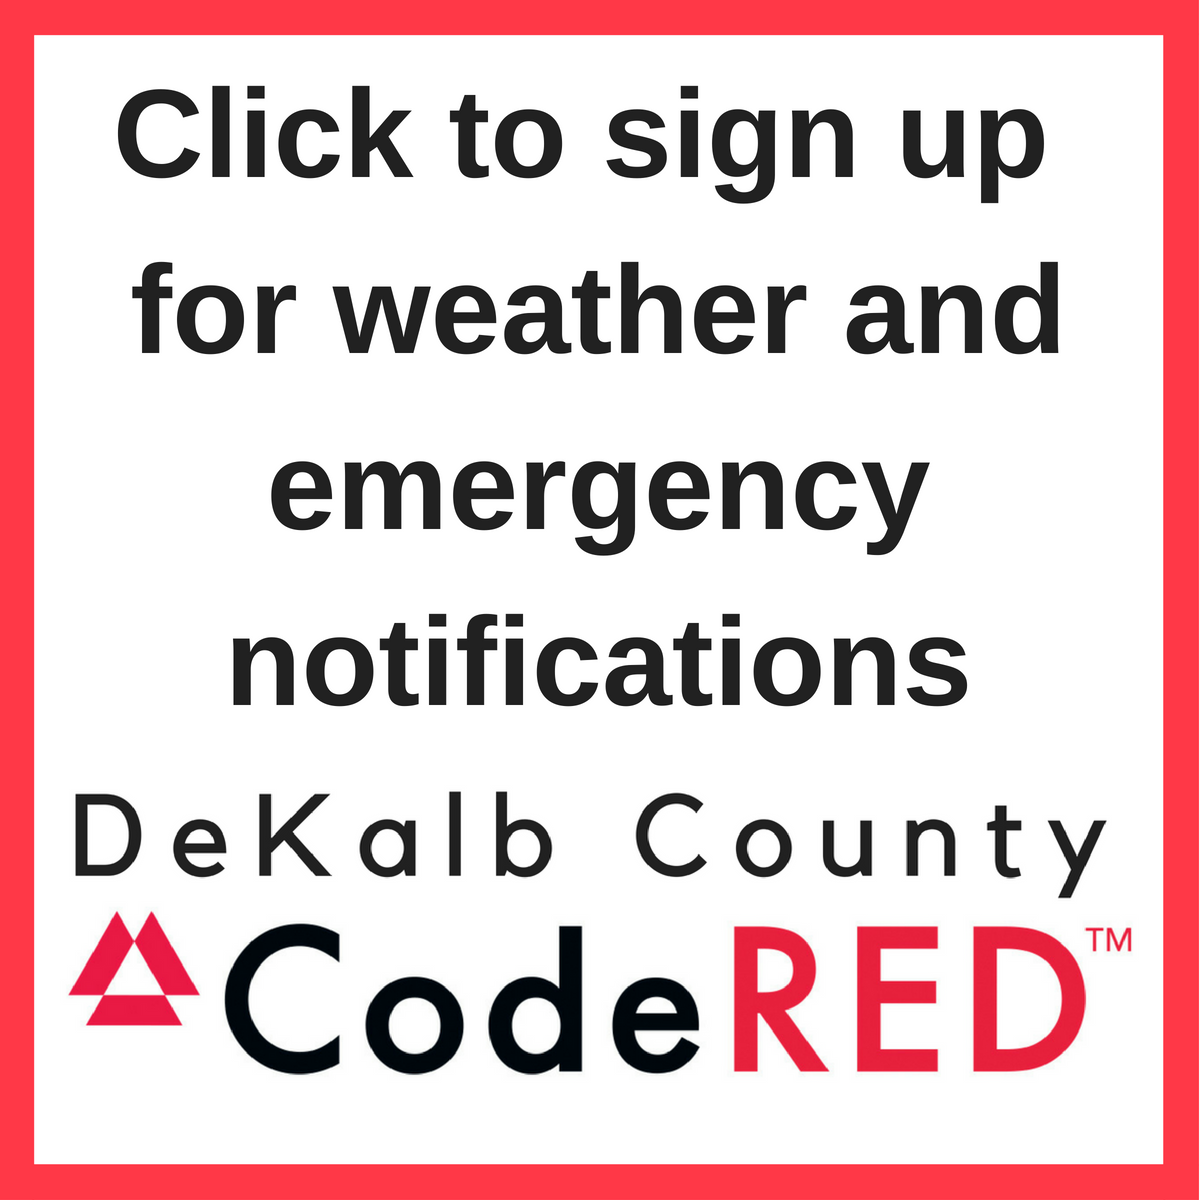 DeKalb County logo with the text click to sign up for weather and emergency notifications